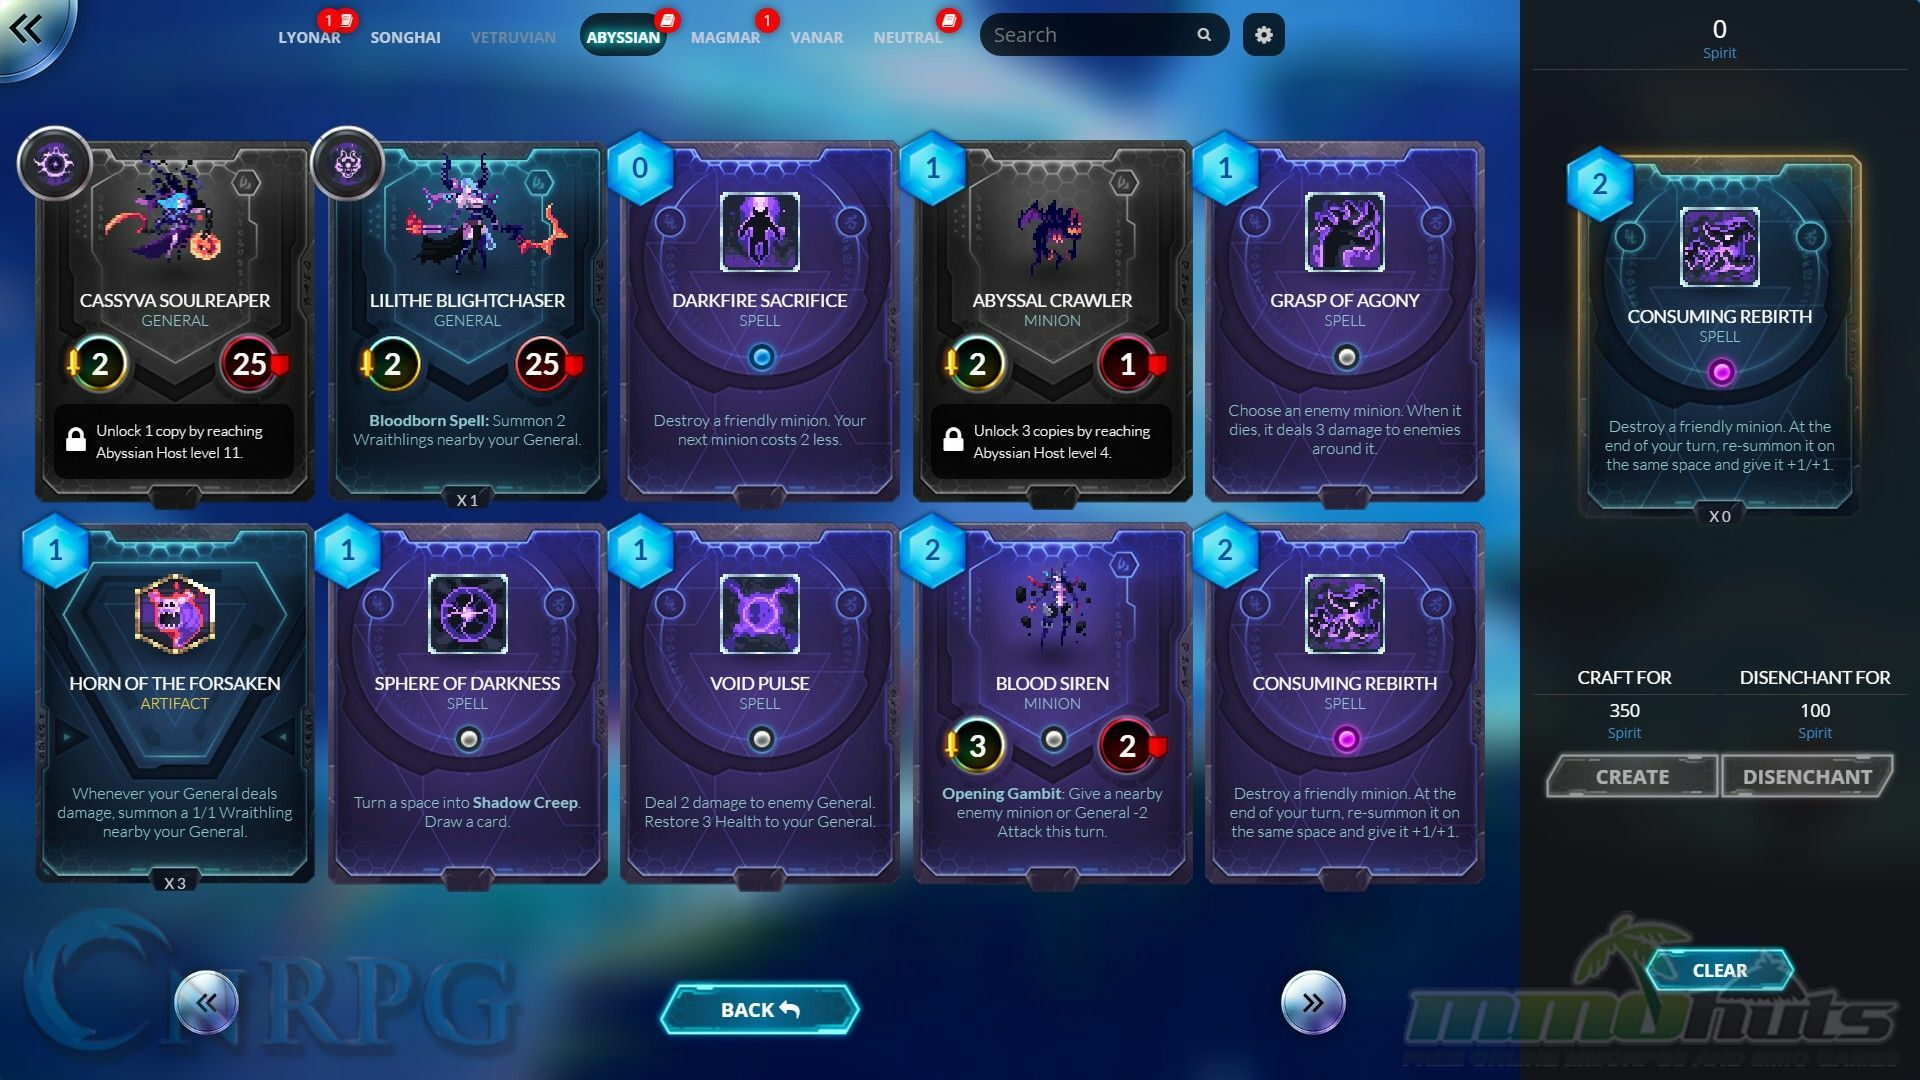 Duelyst Review - Board Game Tactics Meets CCG Goodness